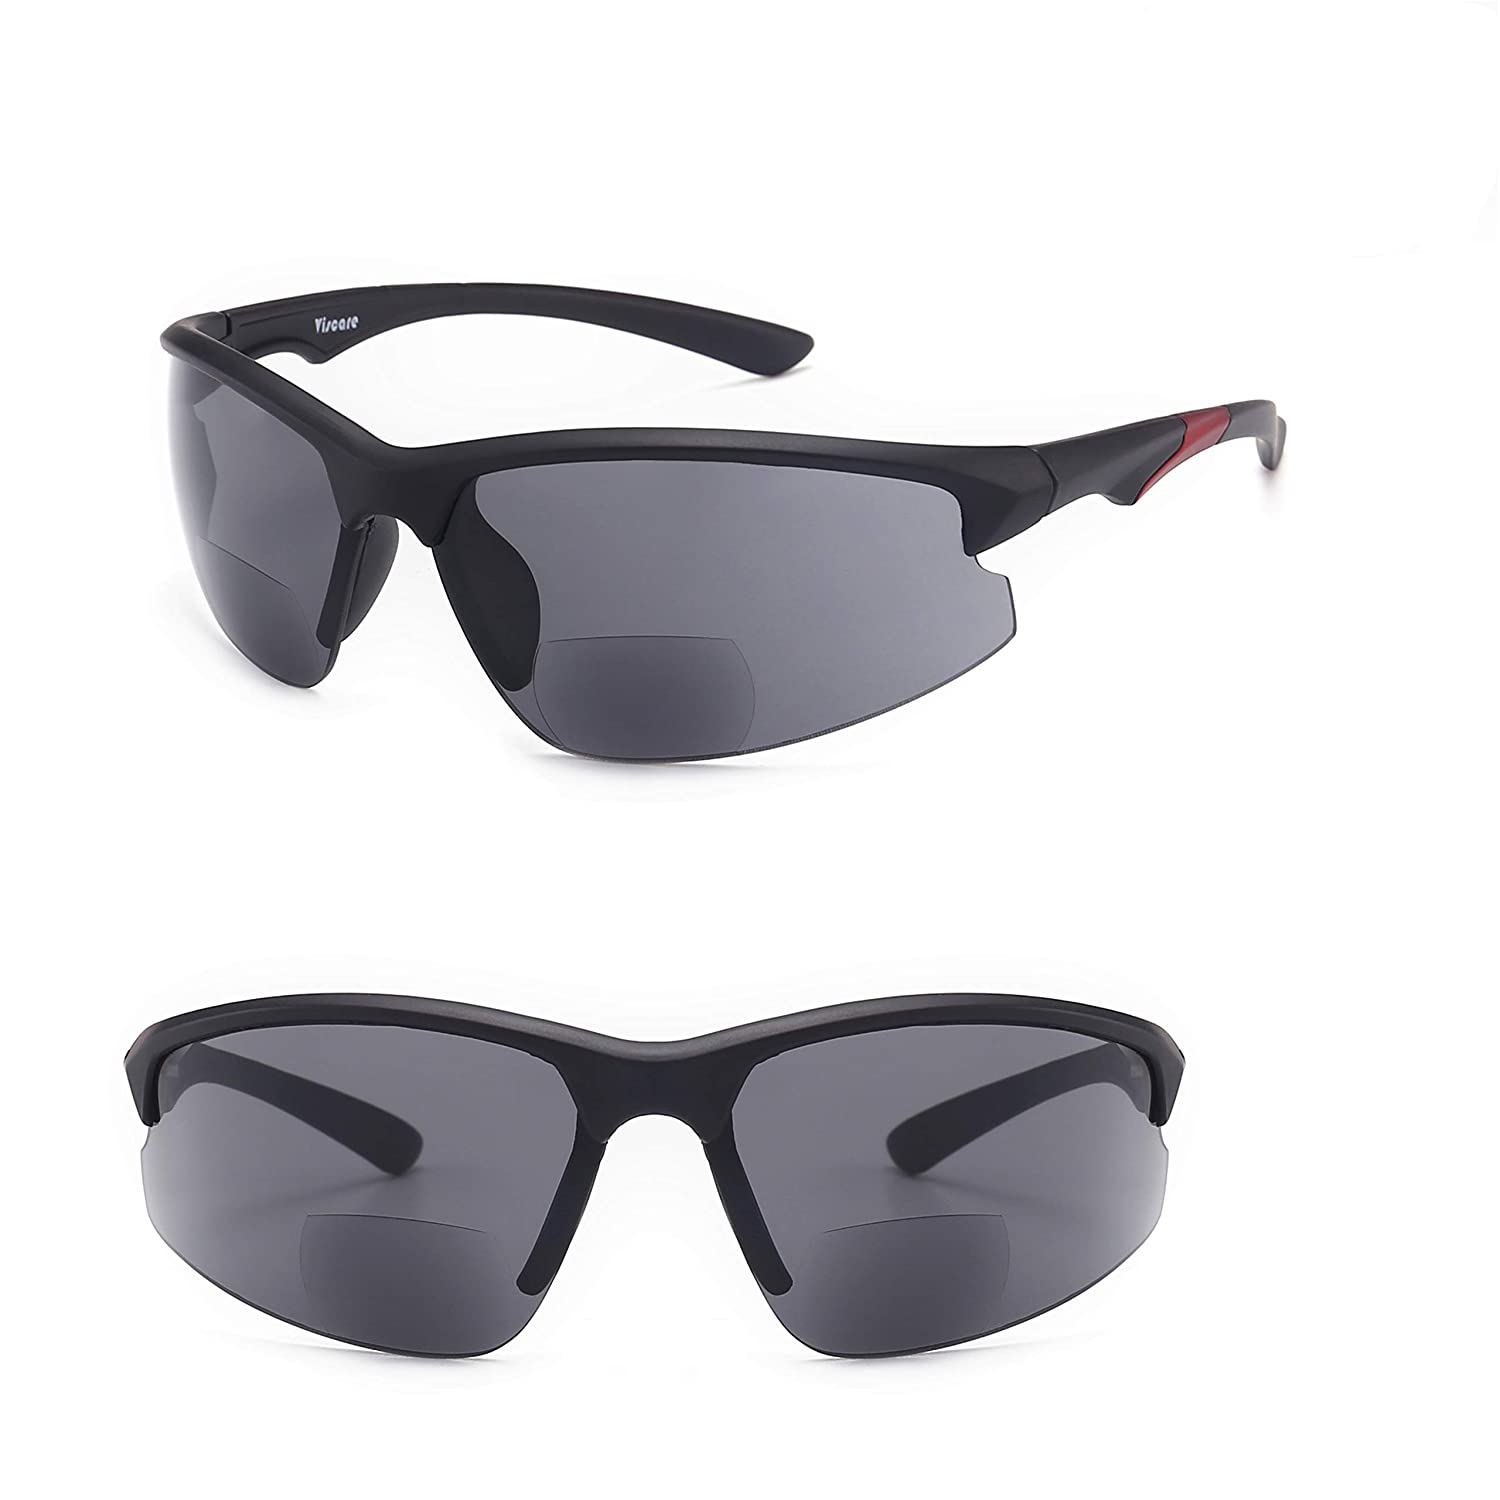 c1708d2b5764 Ultra-light Viscare Men Women Bifocal Sport Wrap Sunglasses with readers  (+1.00